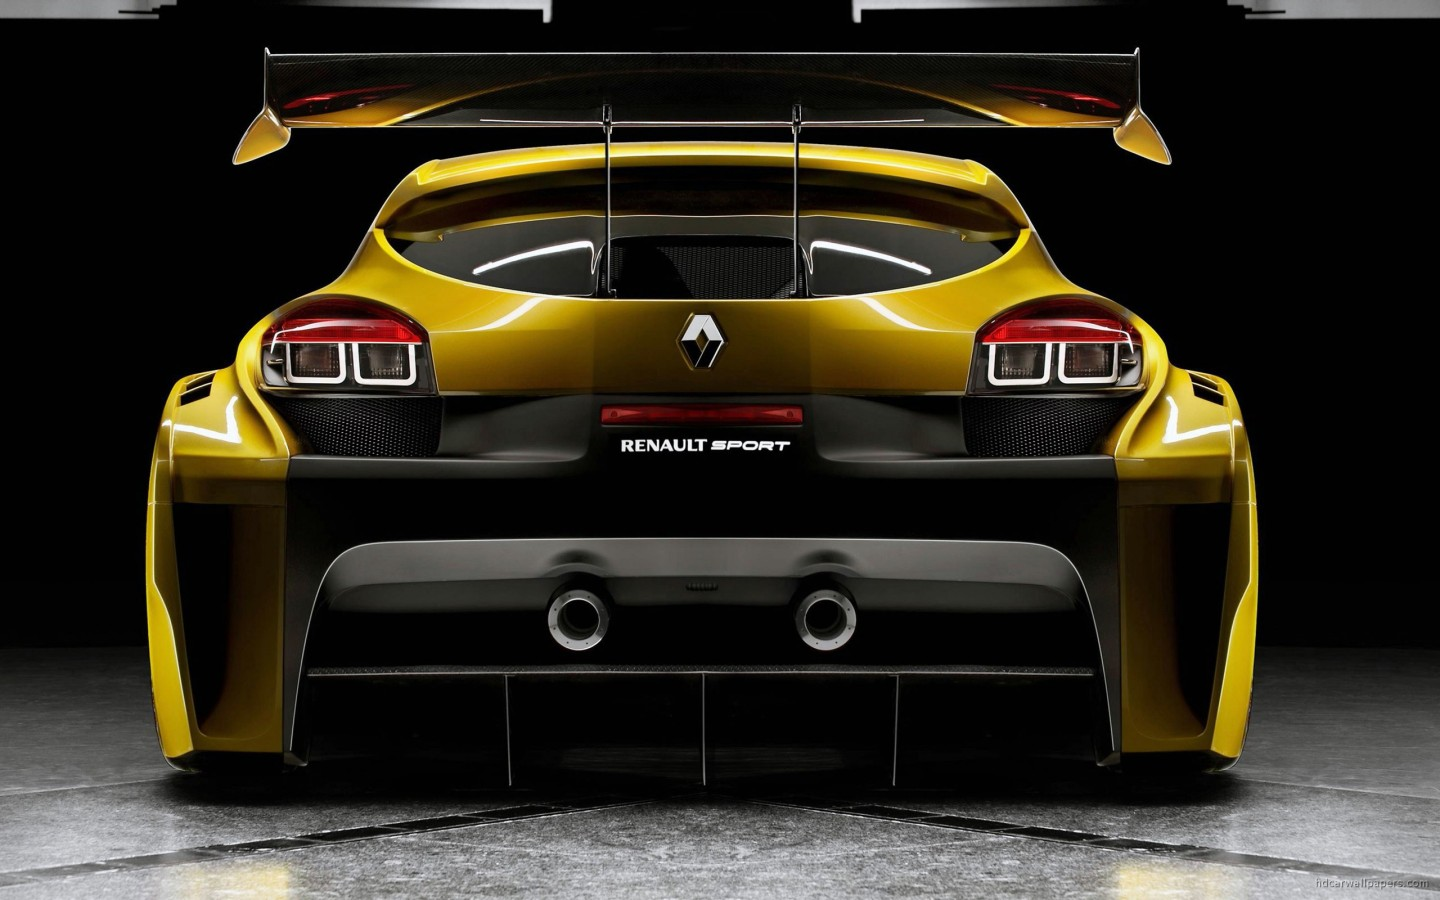 Porsche Car Hd Wallpaper Free Download Renault Megane Trophy Back Wallpaper Hd Car Wallpapers